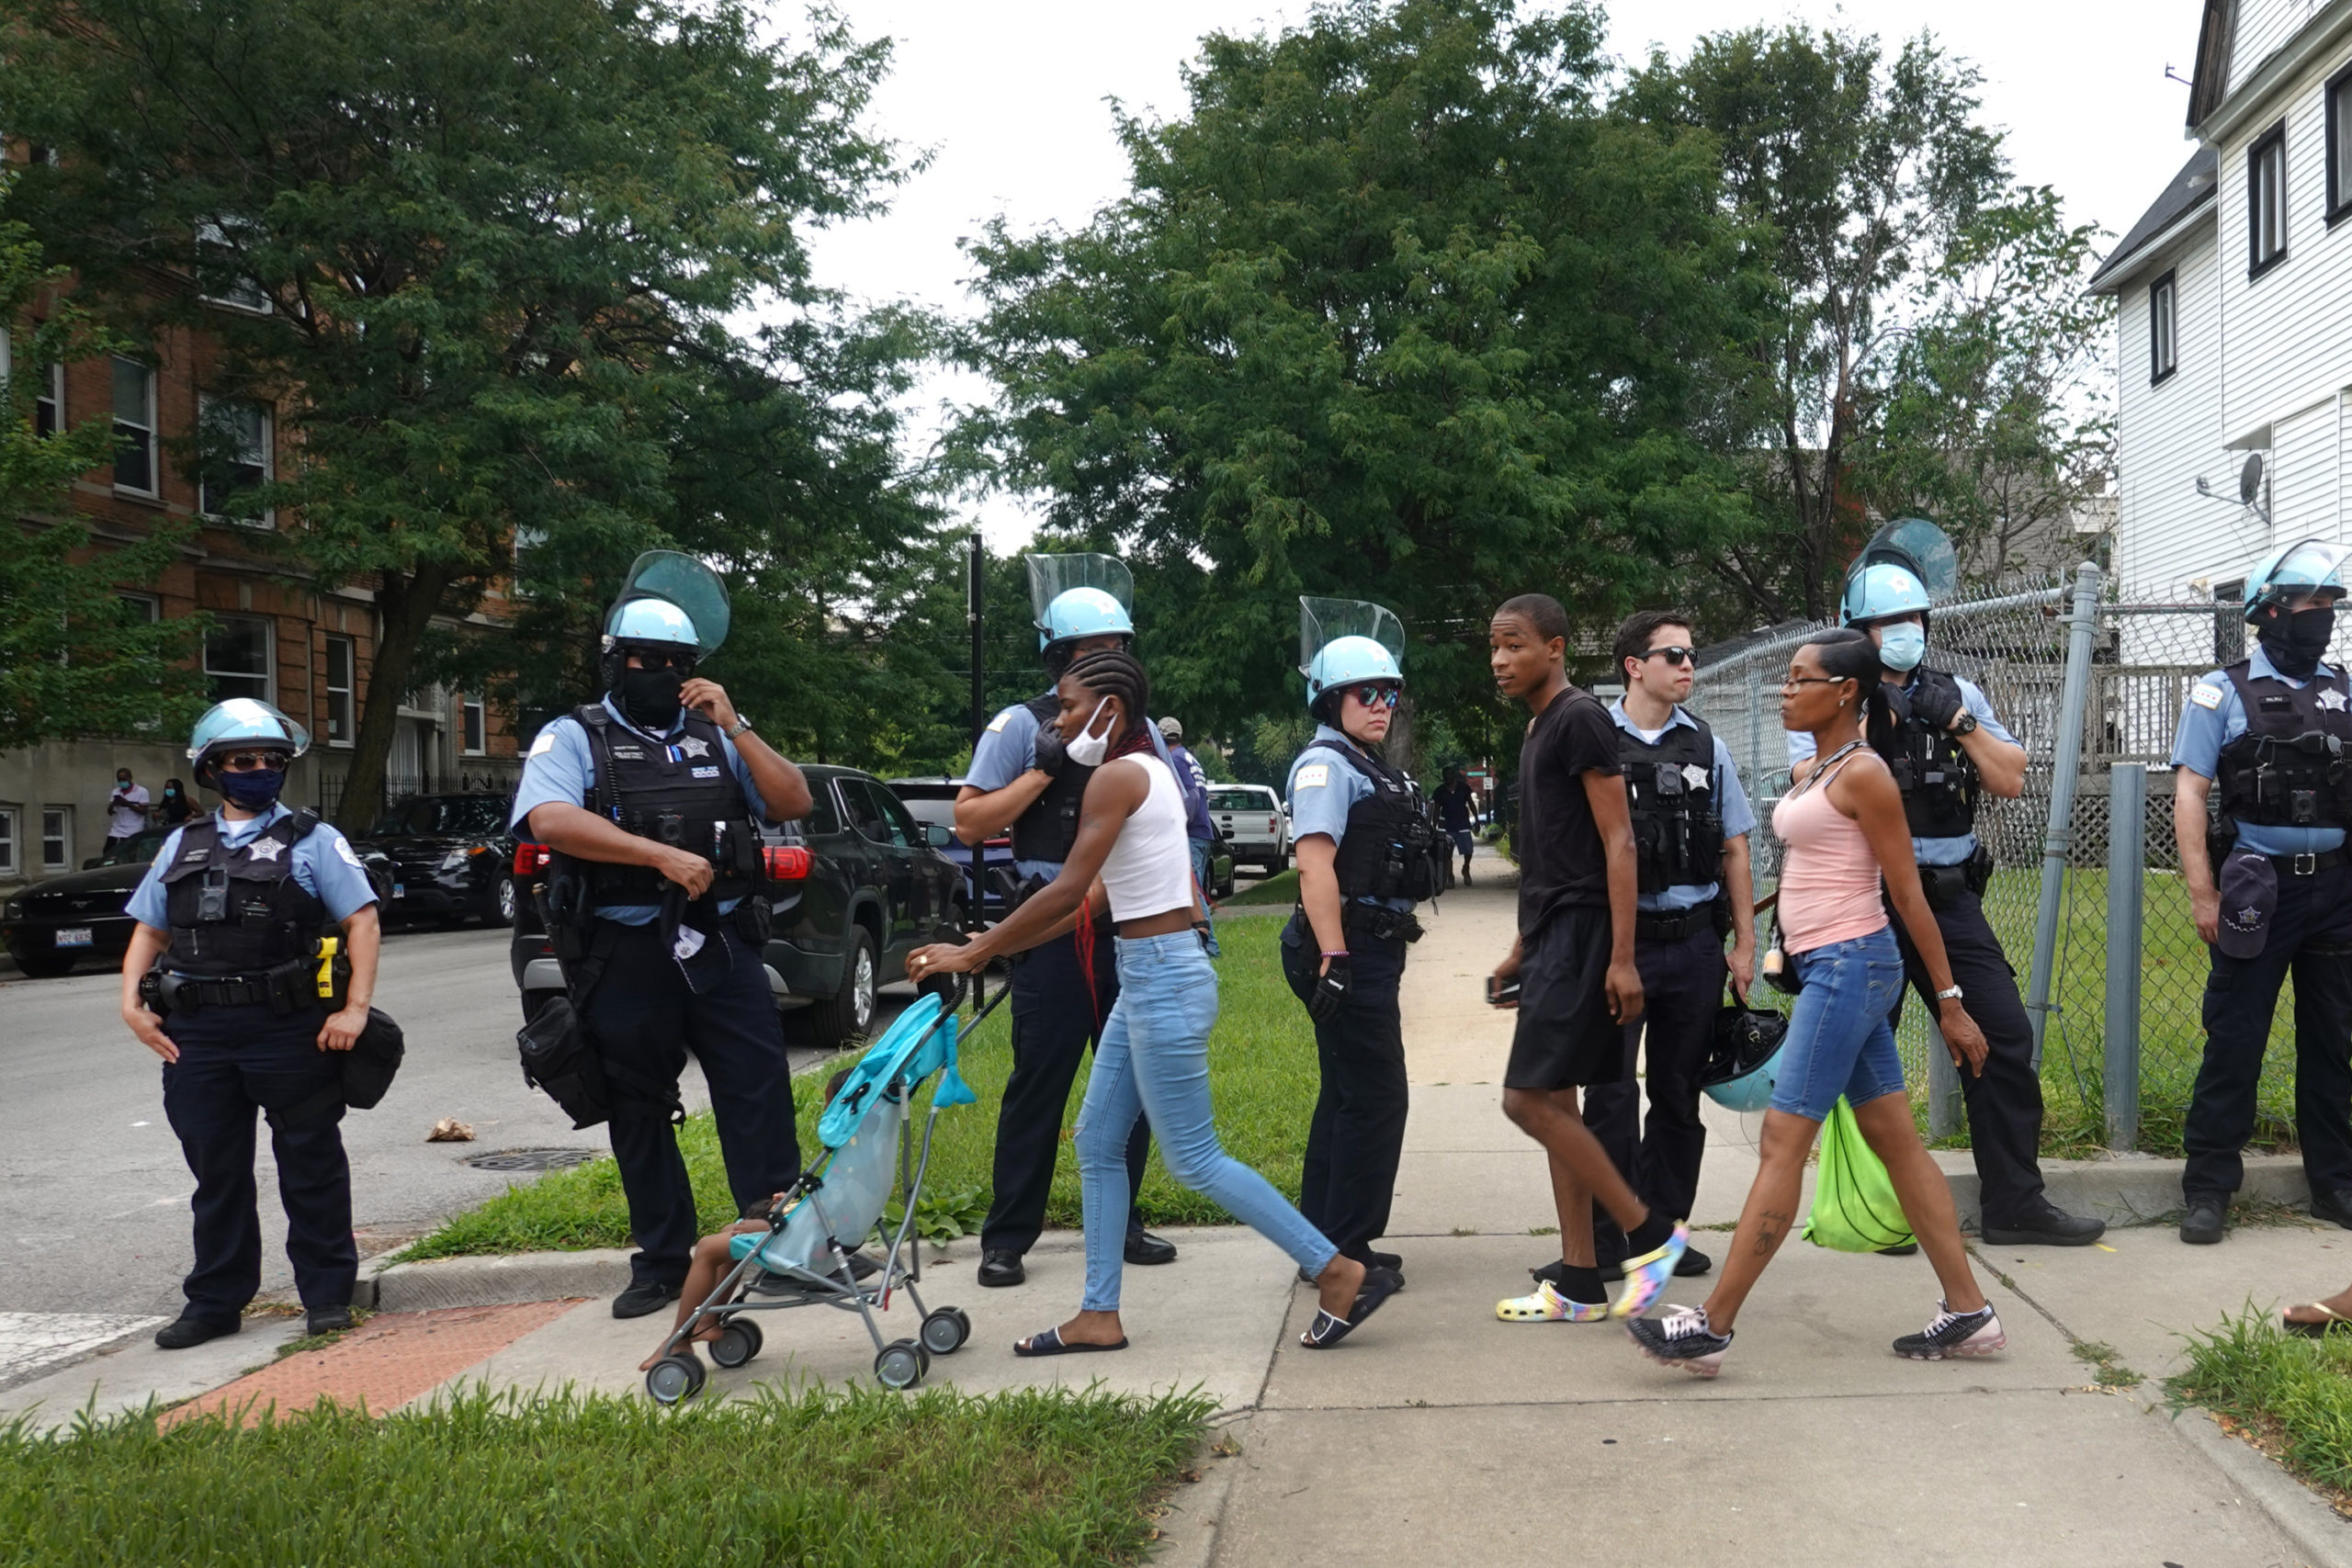 CHICAGO, ILLINOIS - AUGUST 15: Residents walk past police as they shadow demonstrators protesting police brutality as they march toward downtown on August 15, 2020 in Chicago, Illinois. The demonstration was one of several in the city today, either in support of or in opposition to police. (Scott Olson/Getty Images)